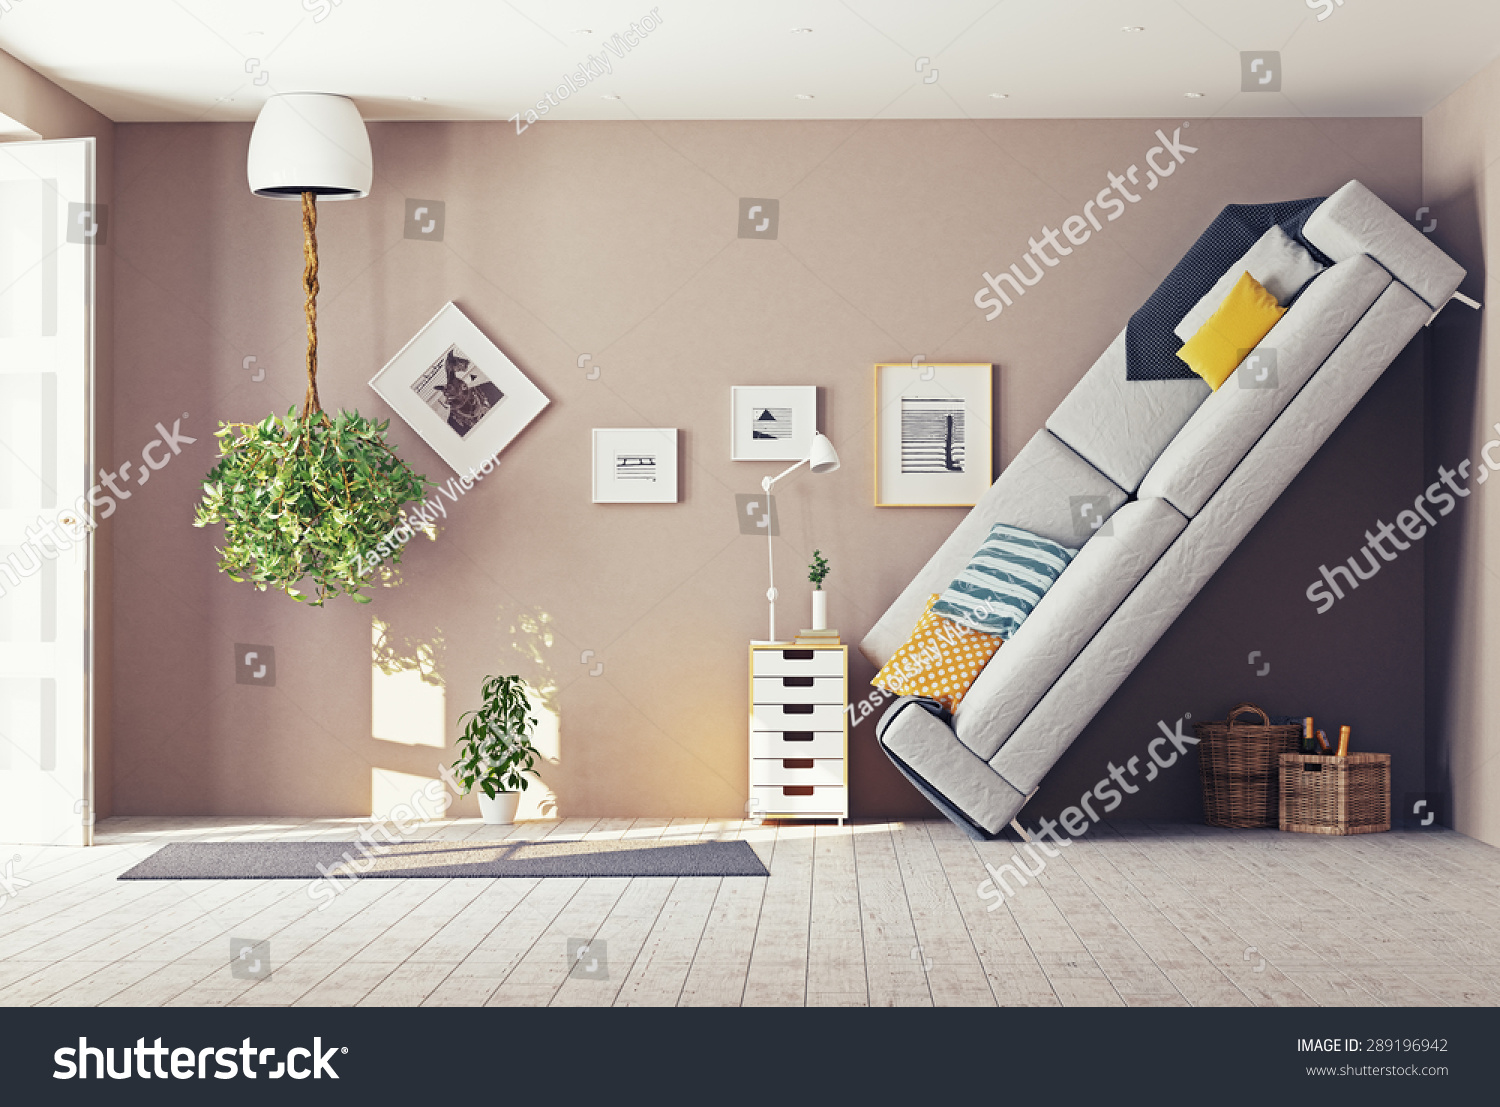 Strange living room interior 3d design stock illustration for 3d interior design of living room